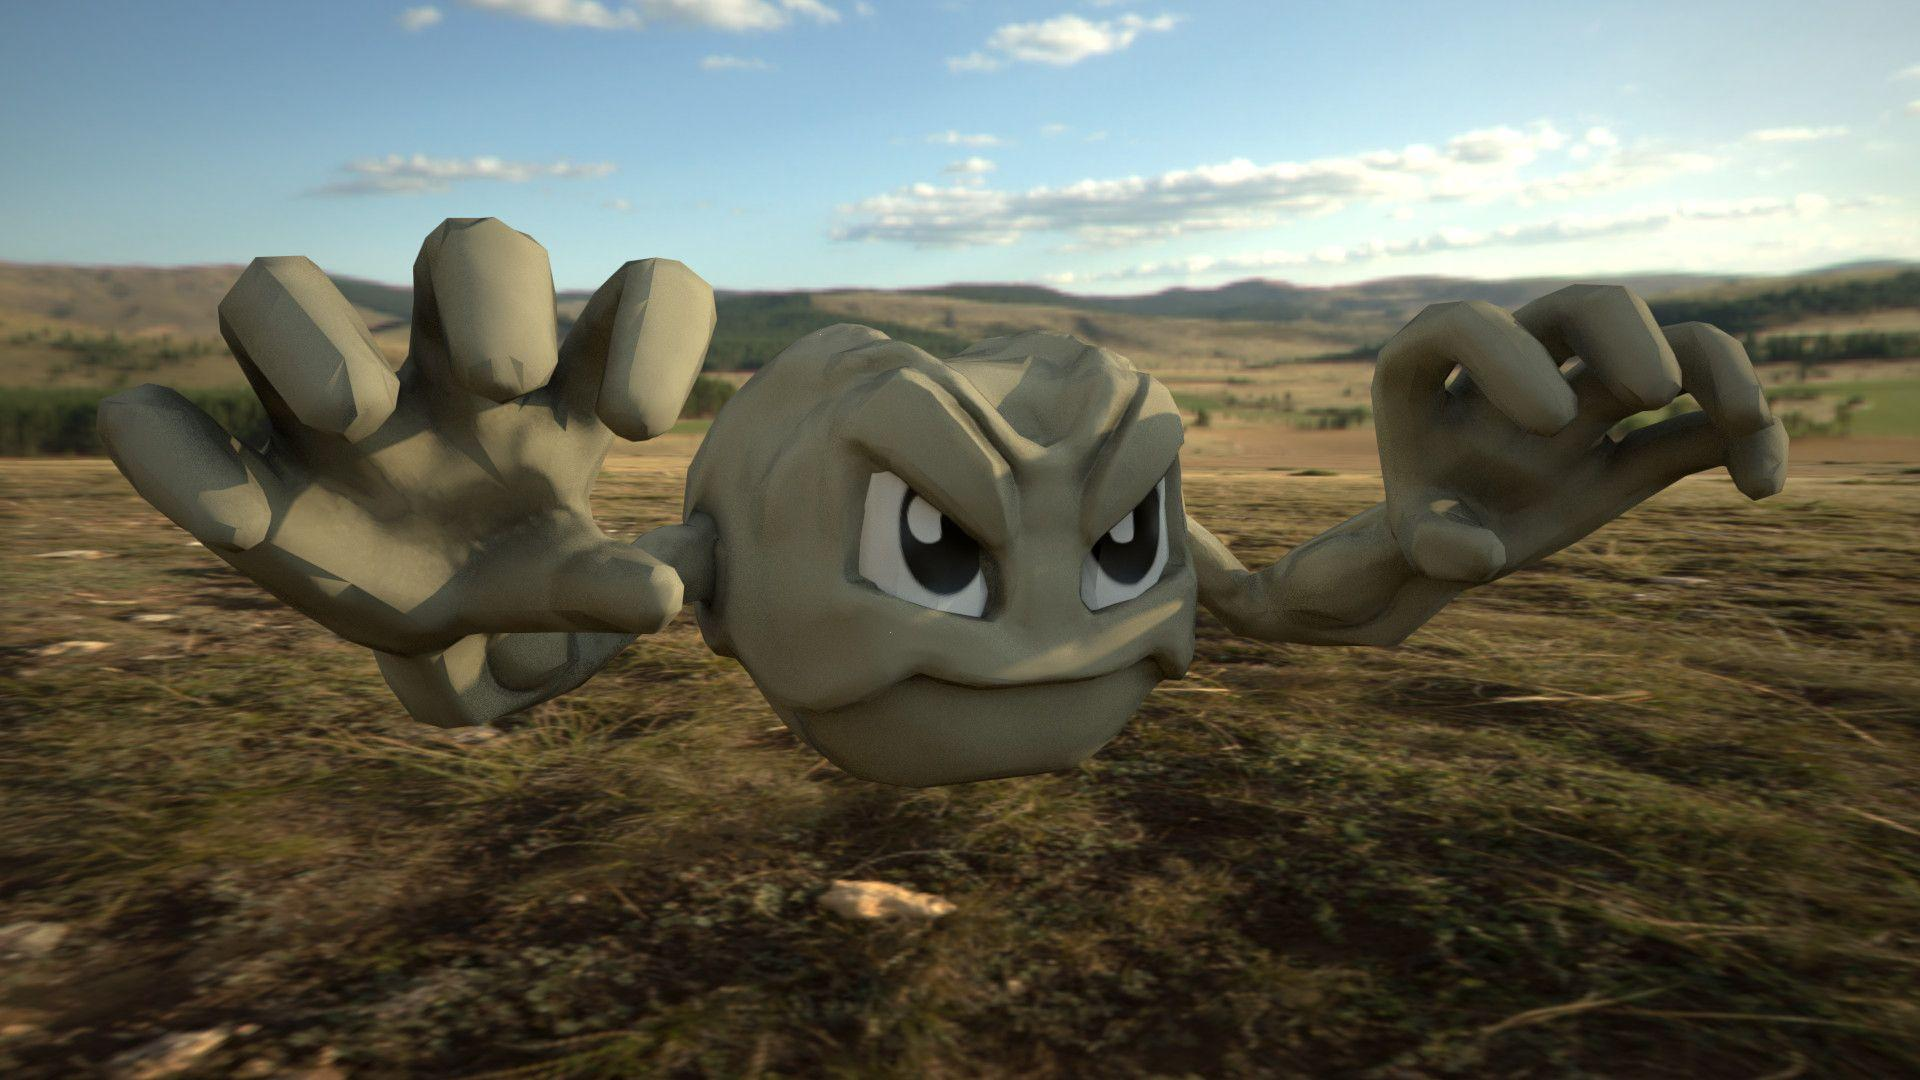 ArtStation - Geodude, David Pierotti